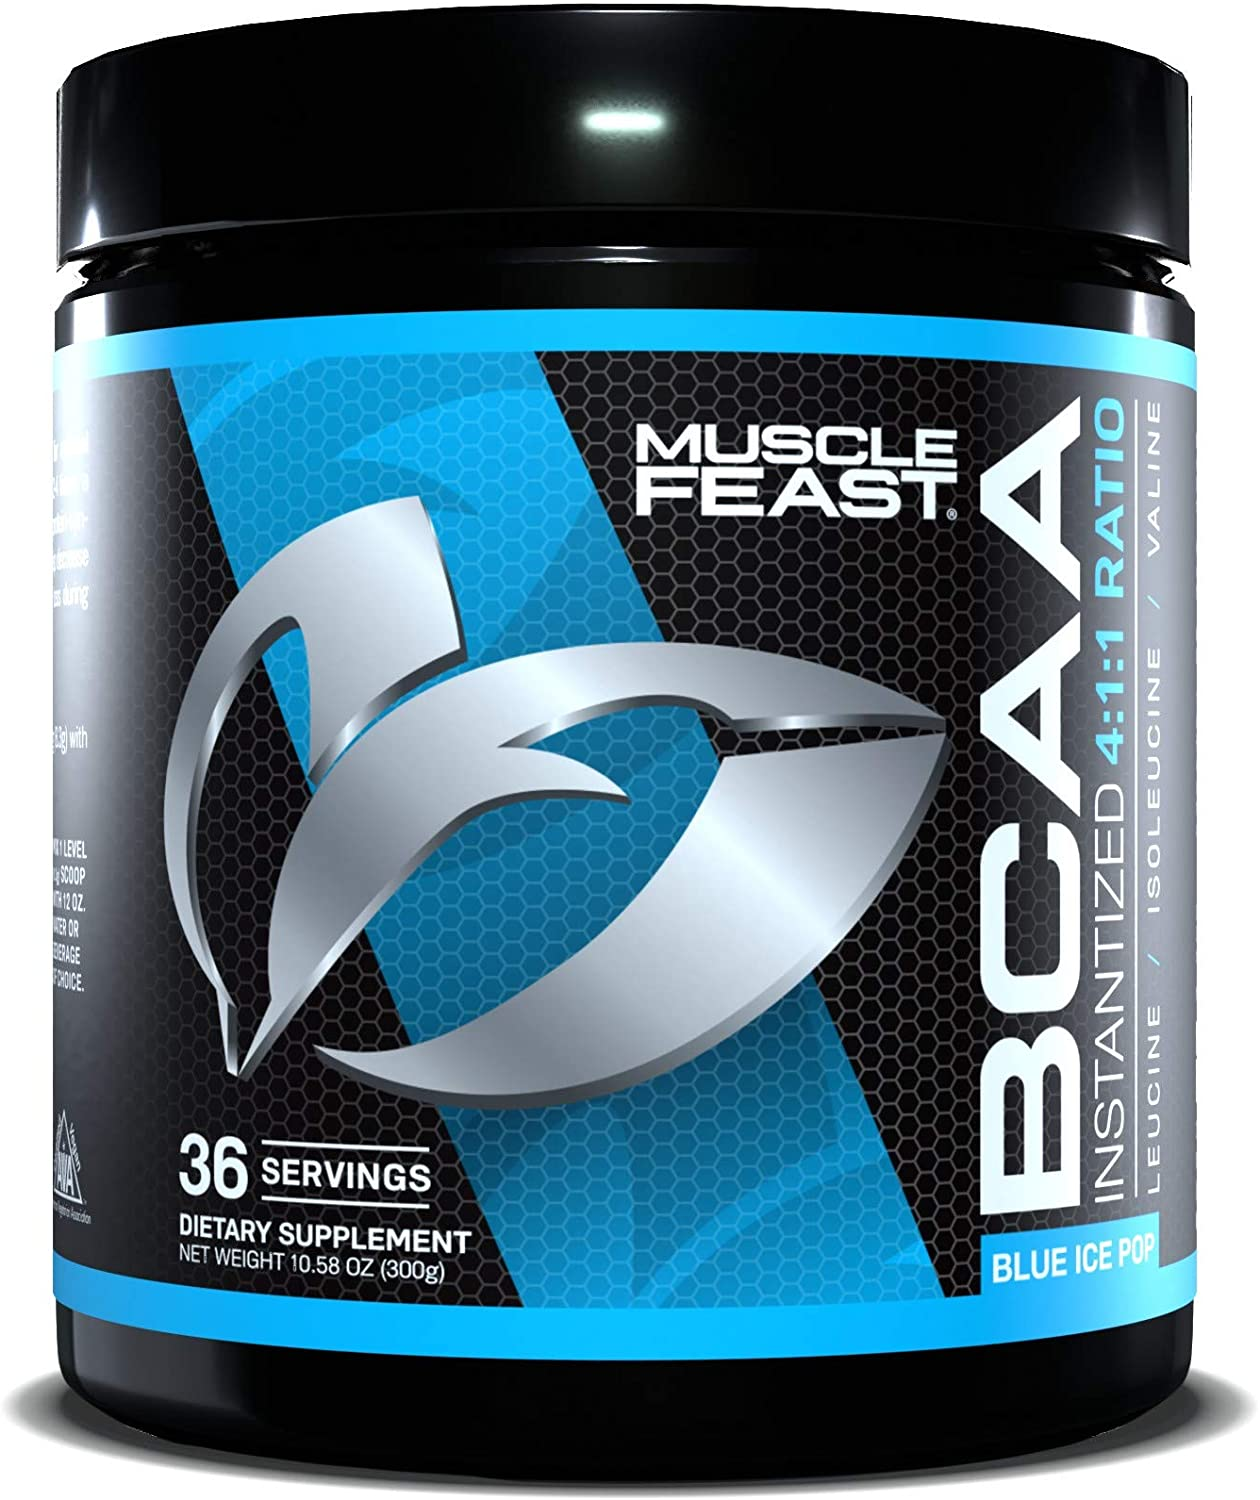 MUSCLE FEAST BCAA Powder 4:1:1 Ratio, Keto Friendly, Sugar Free, Post Workout Recovery, 36 Servings (300 Gram, Blue Ice Pop)